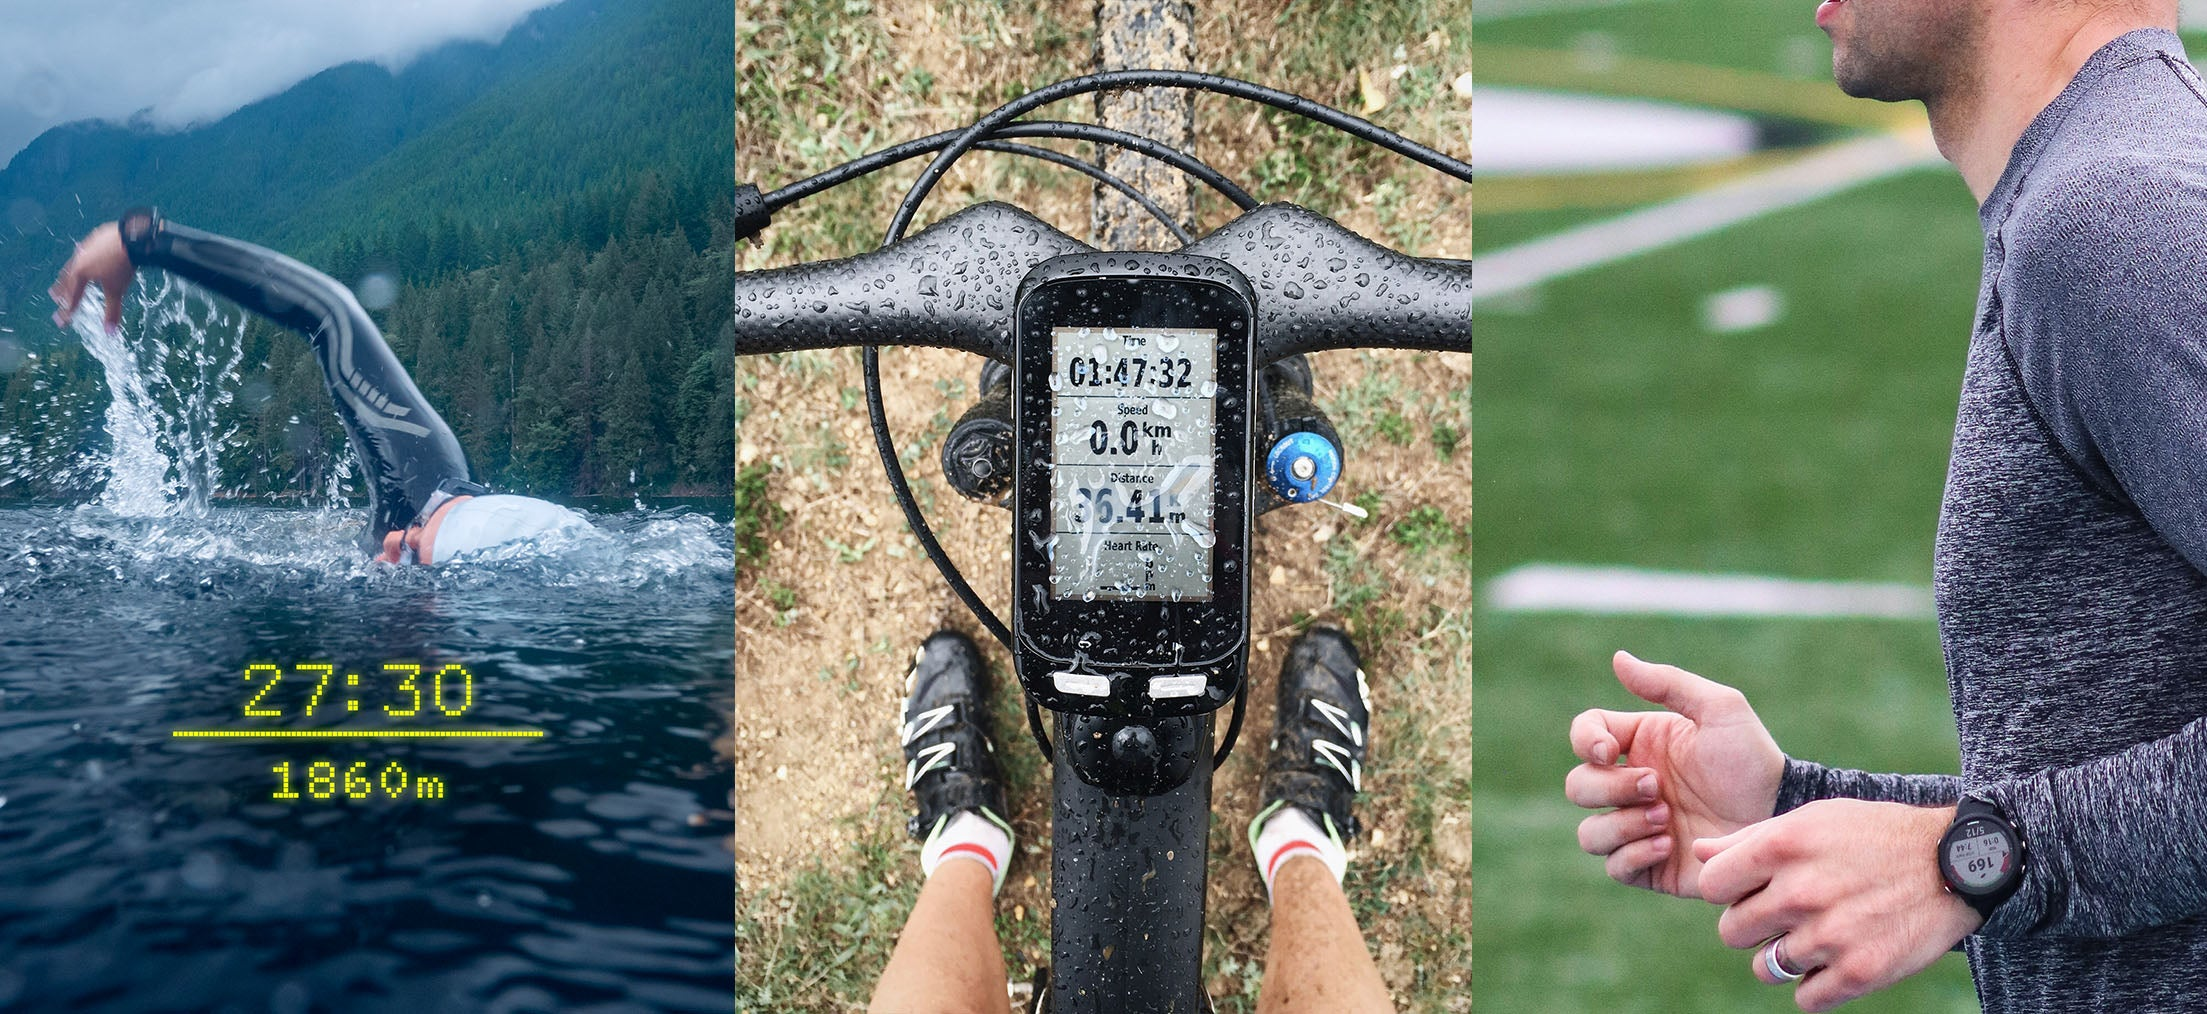 Form goggles enables swimmers to access their live metrics like bikers and runners.